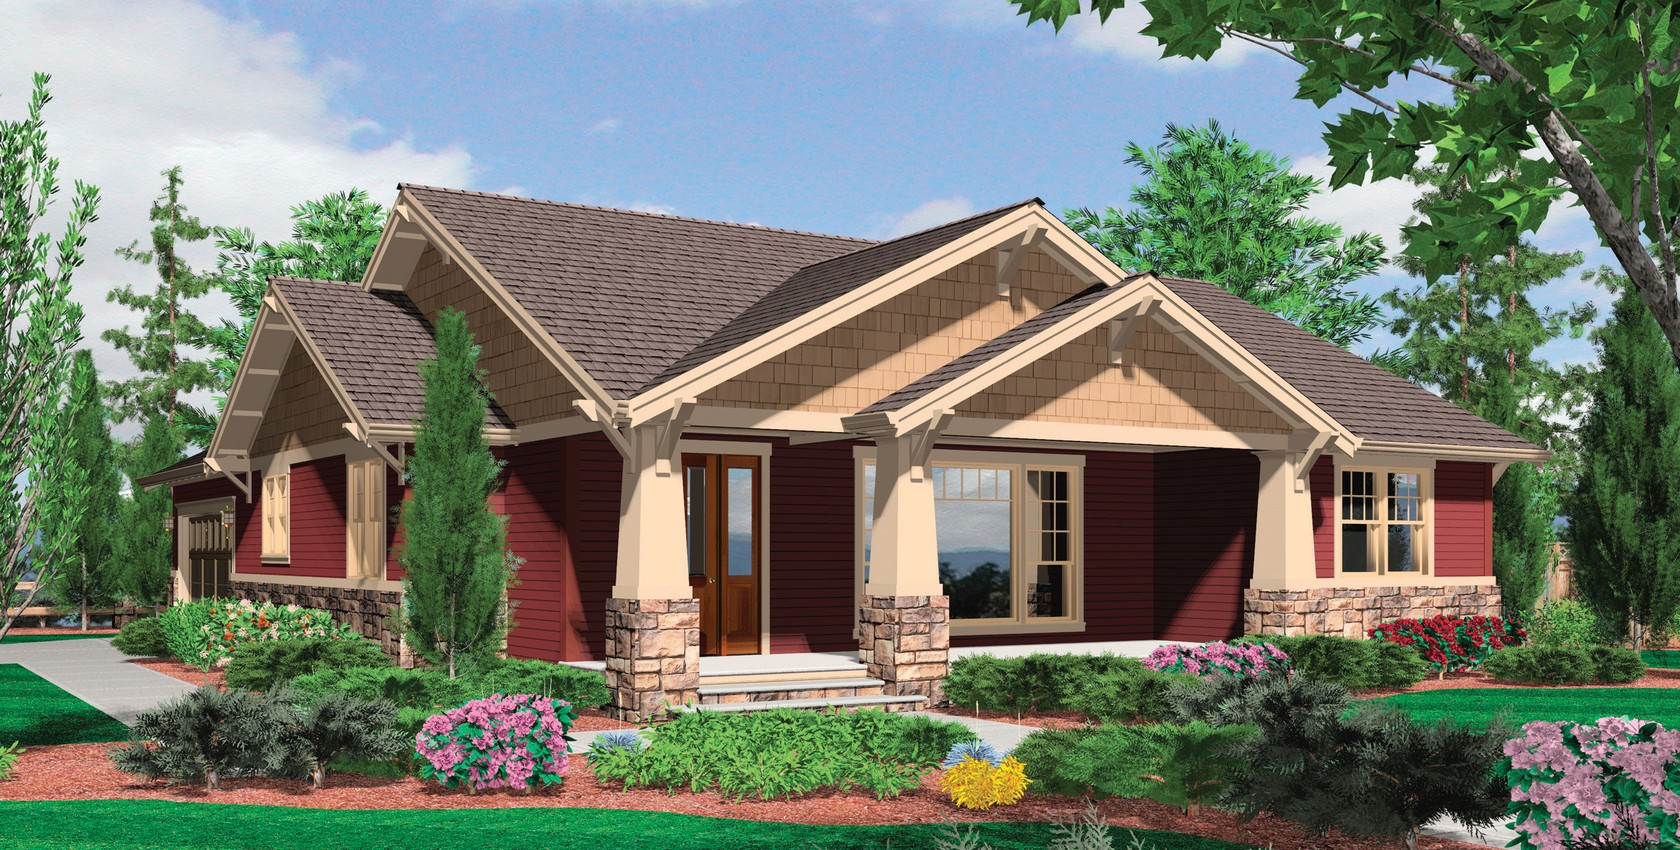 Image for Ellington-3 Bedroom Craftsman Plan with Spacious Feel-236